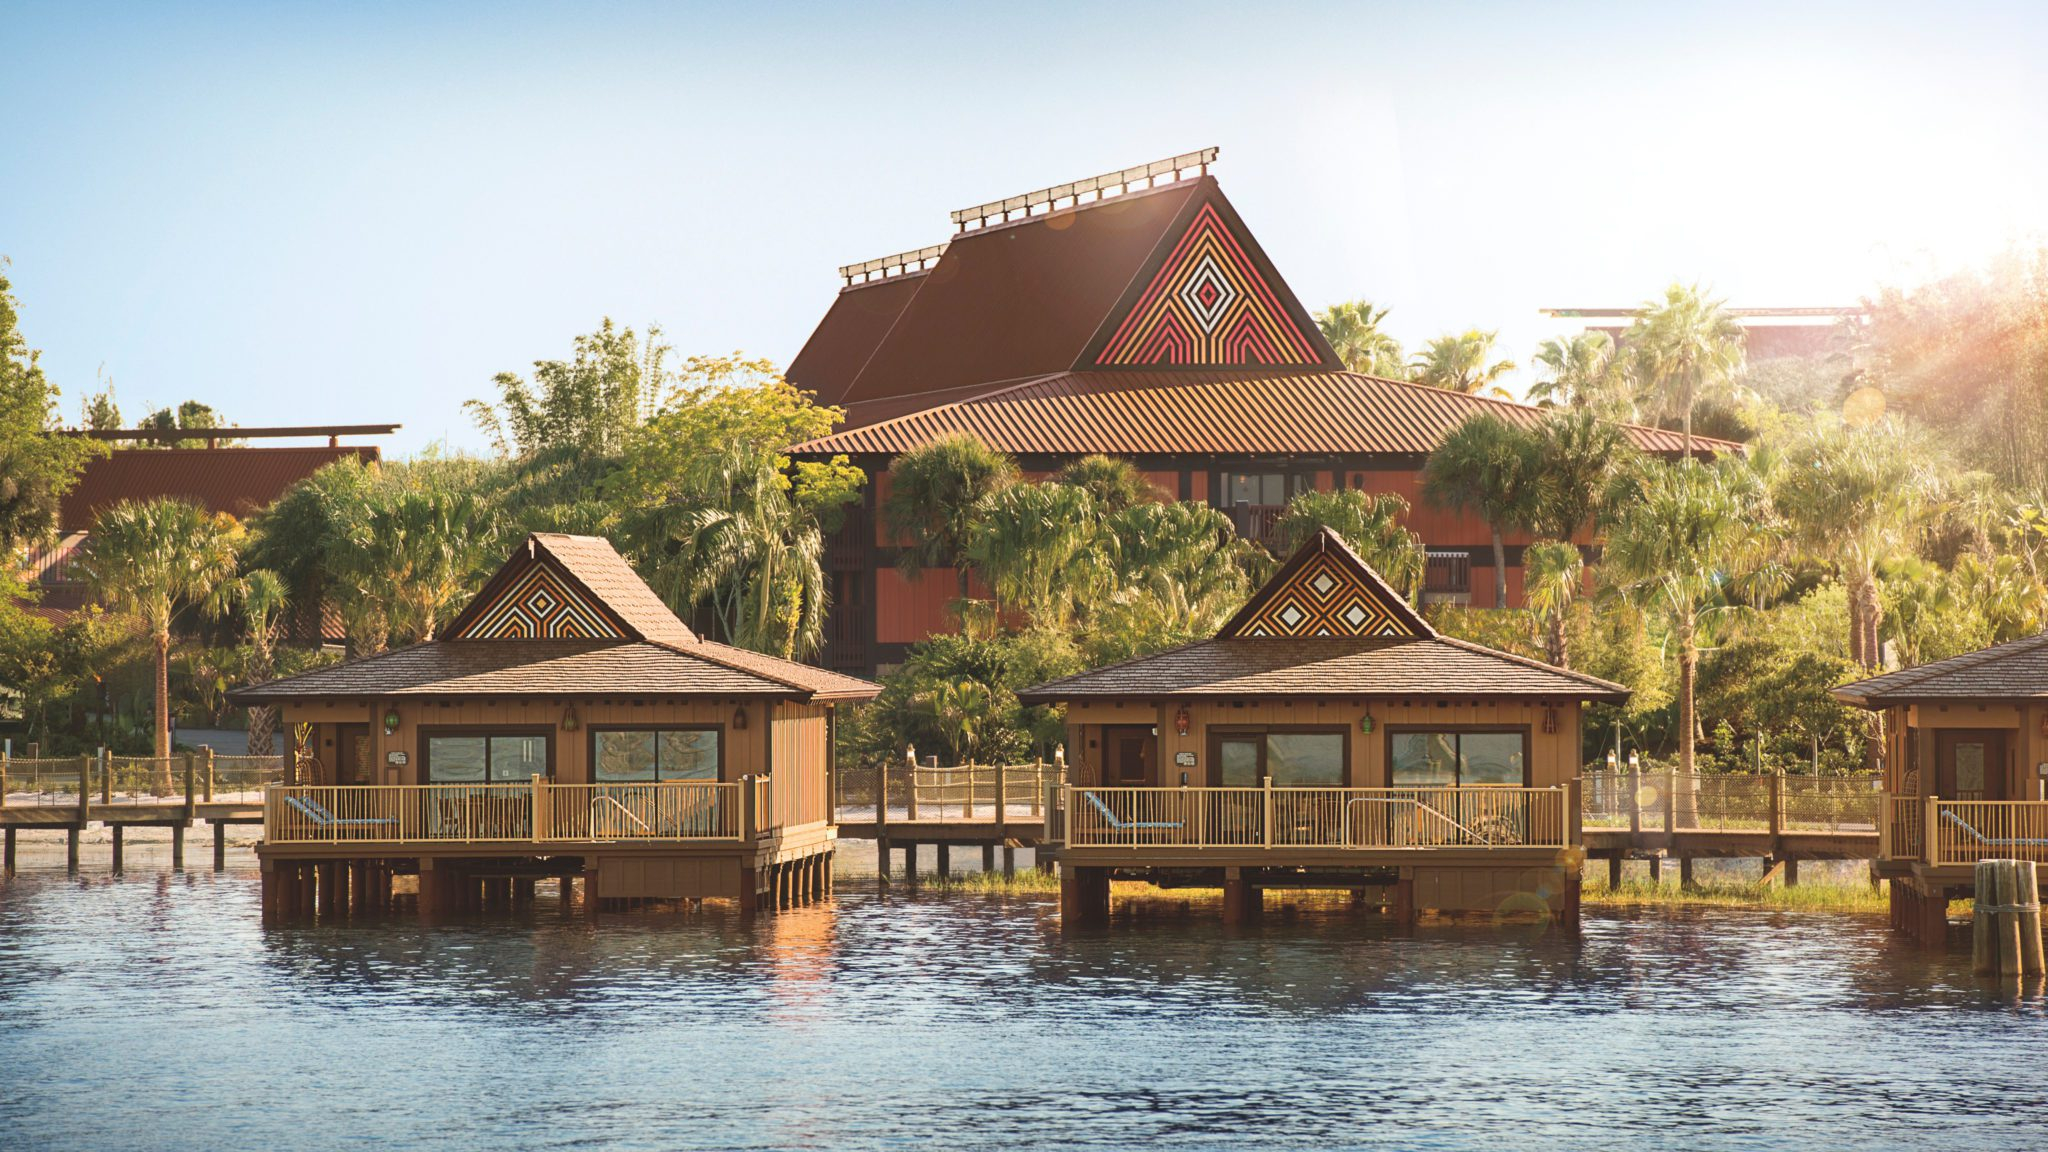 Inspirational Air Conditioner Issues At Disney's Polynesian Bungalows within Beautiful Disney Polynesian Resort Bungalows